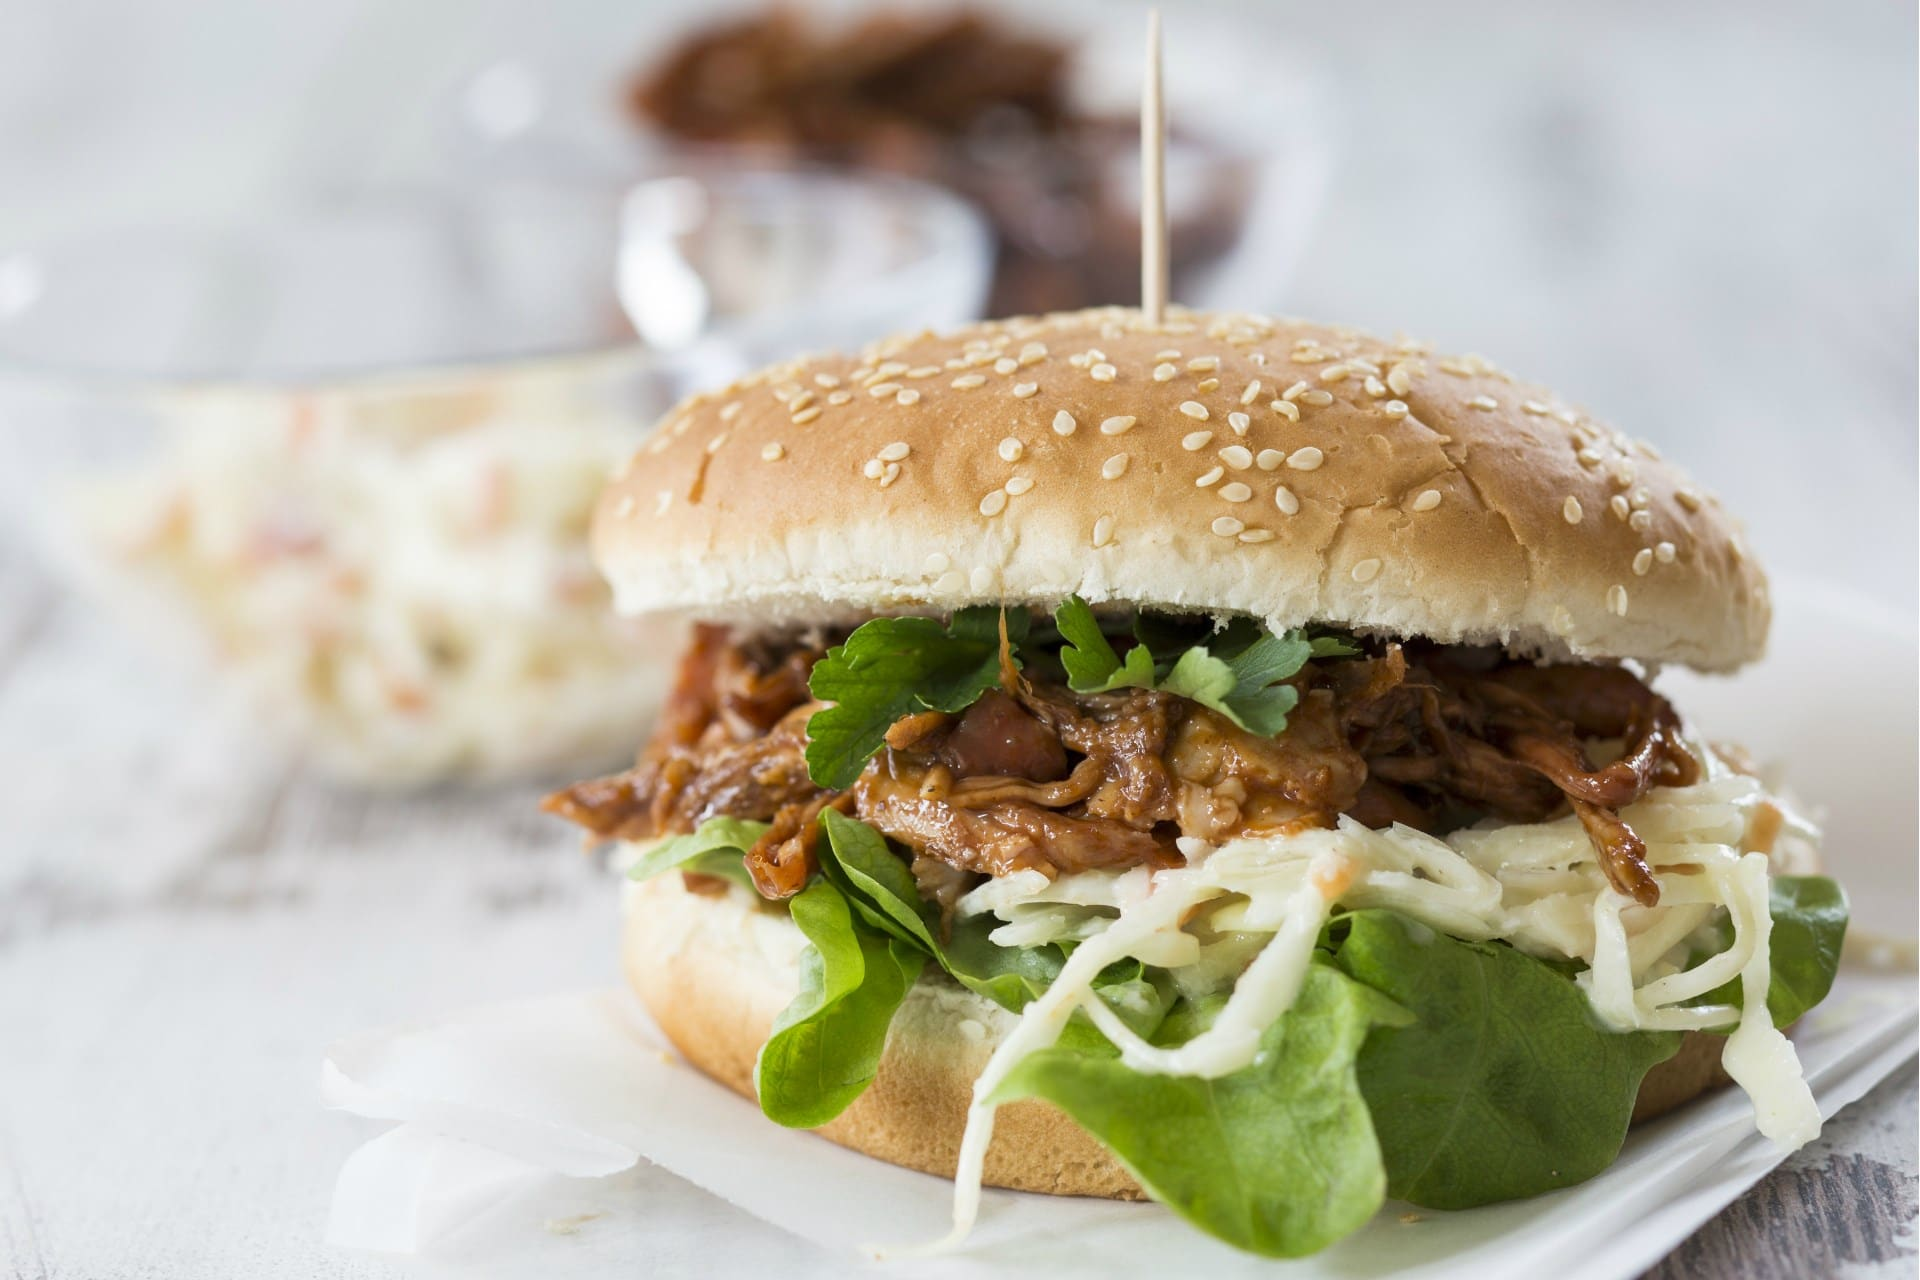 original_Pulled-Pork.jpg